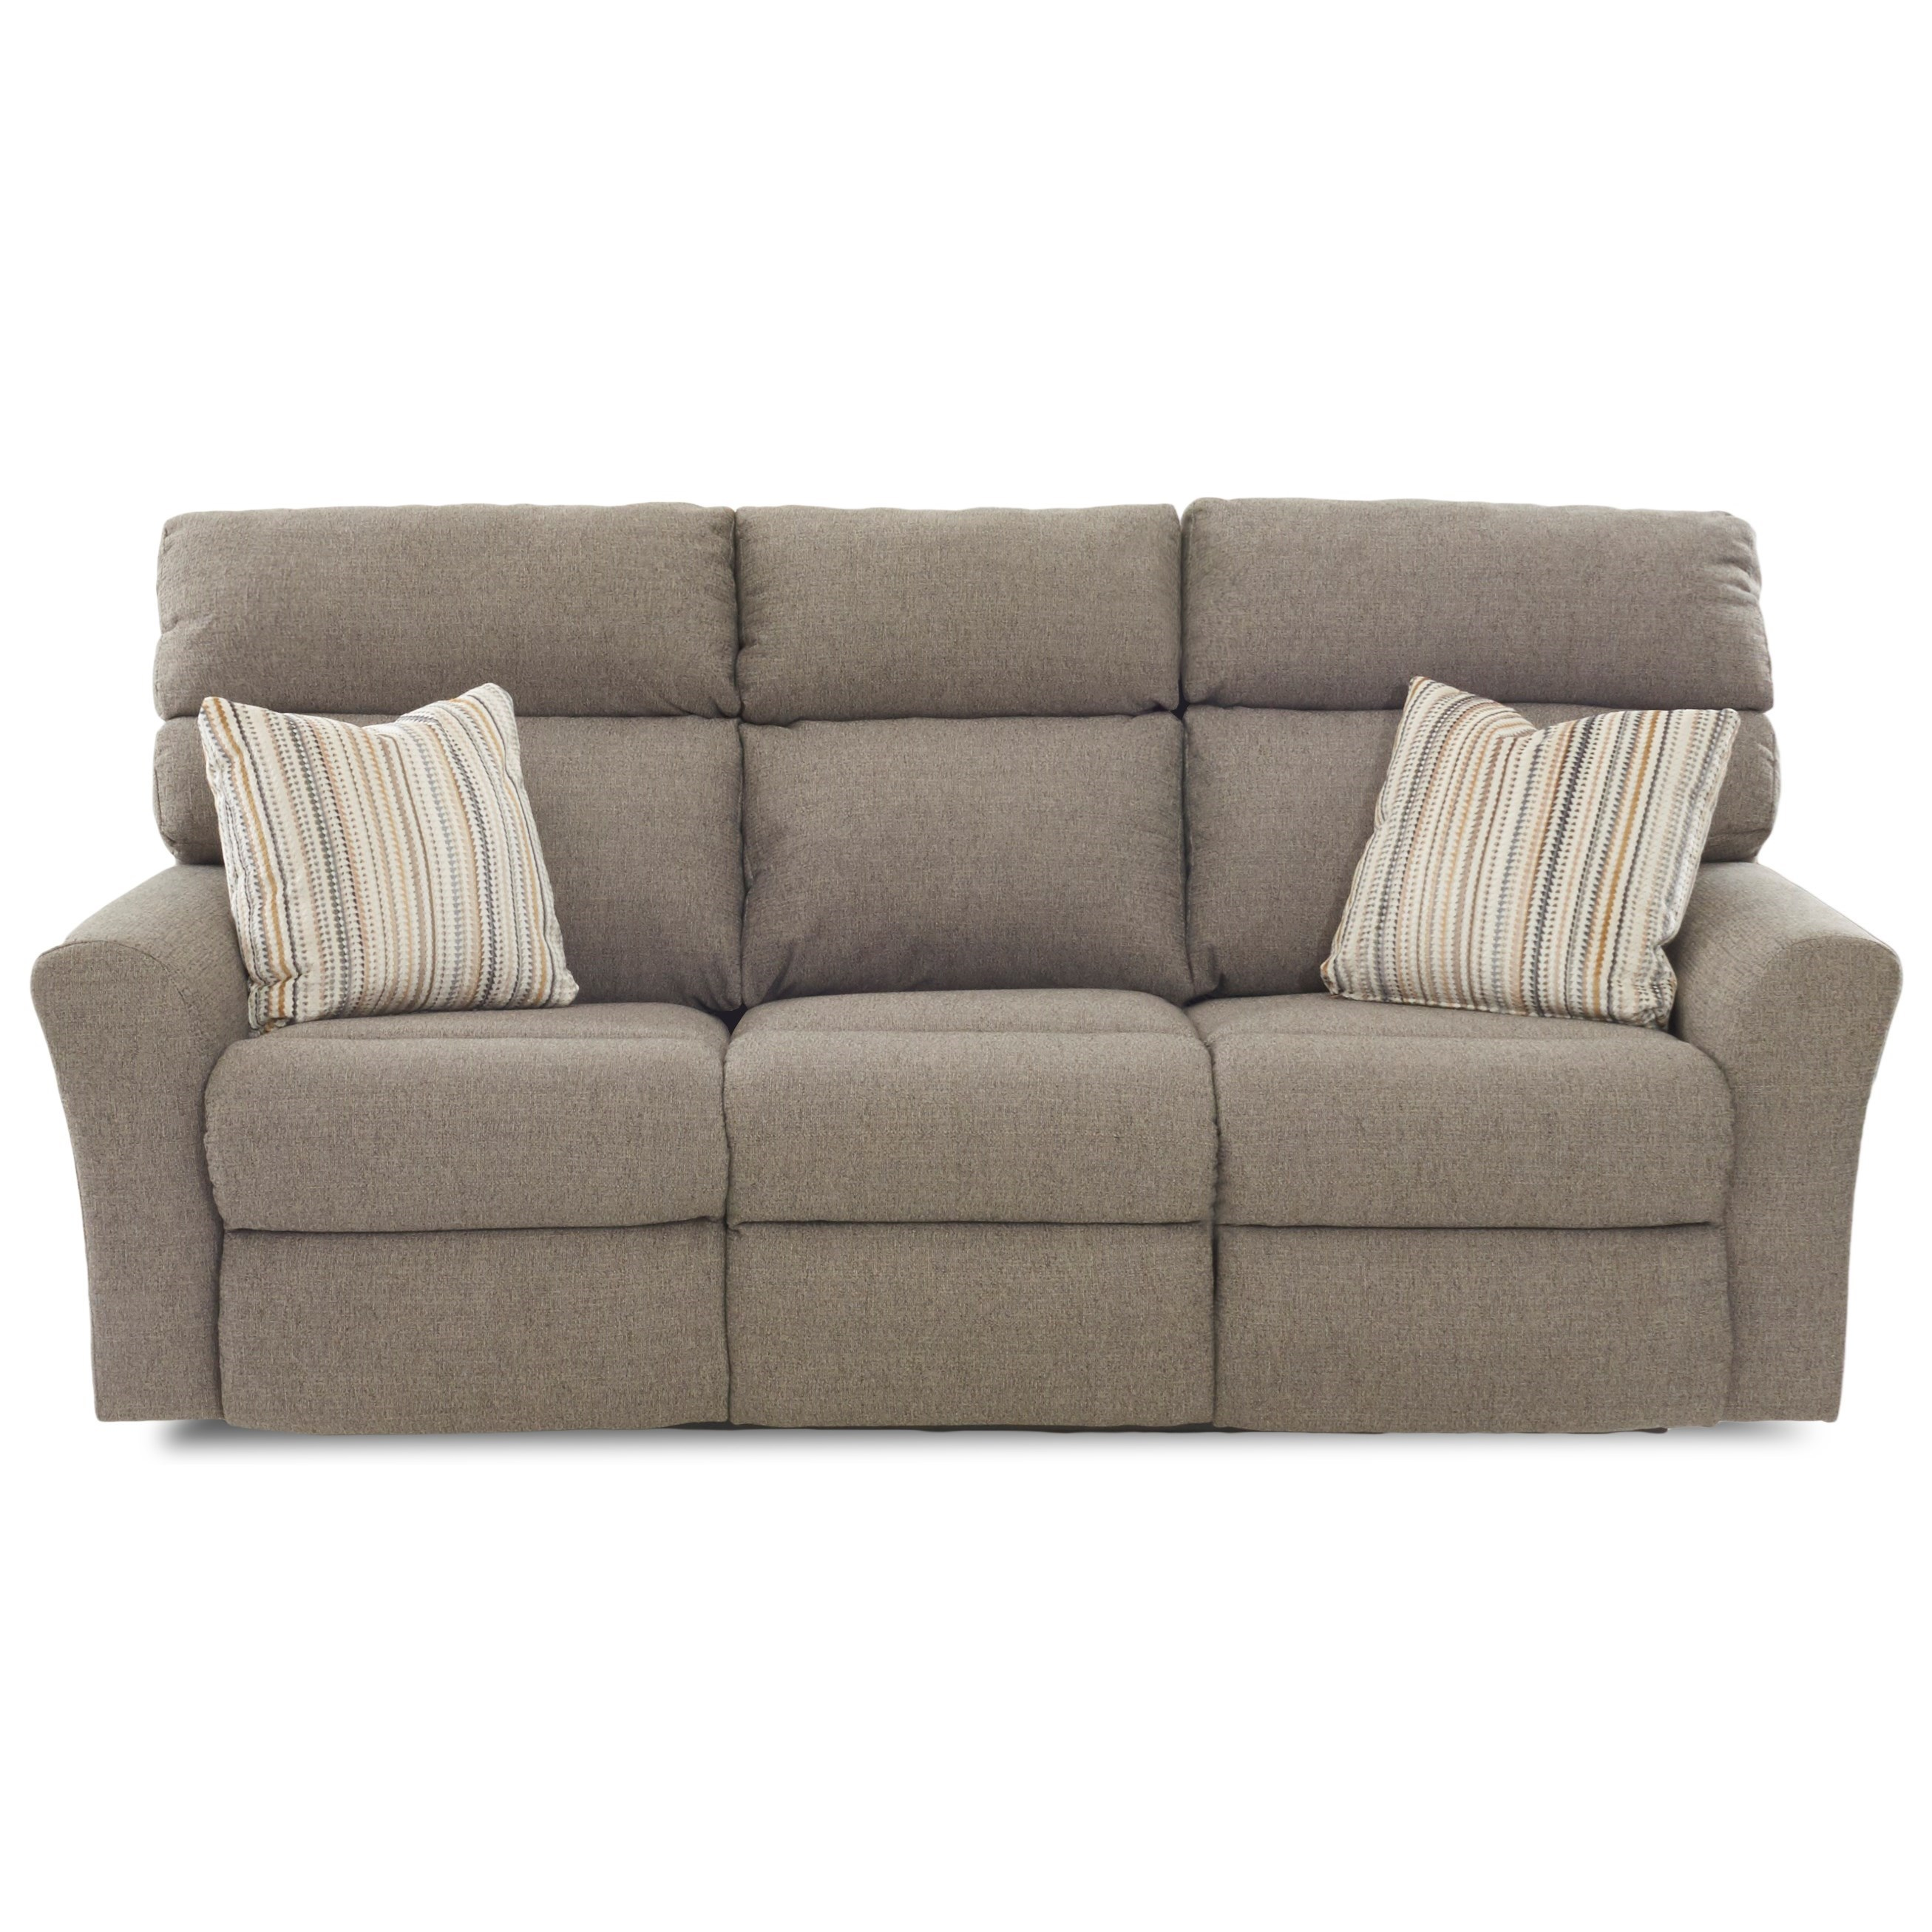 Reclining Sofa 3 Mech W Pillows